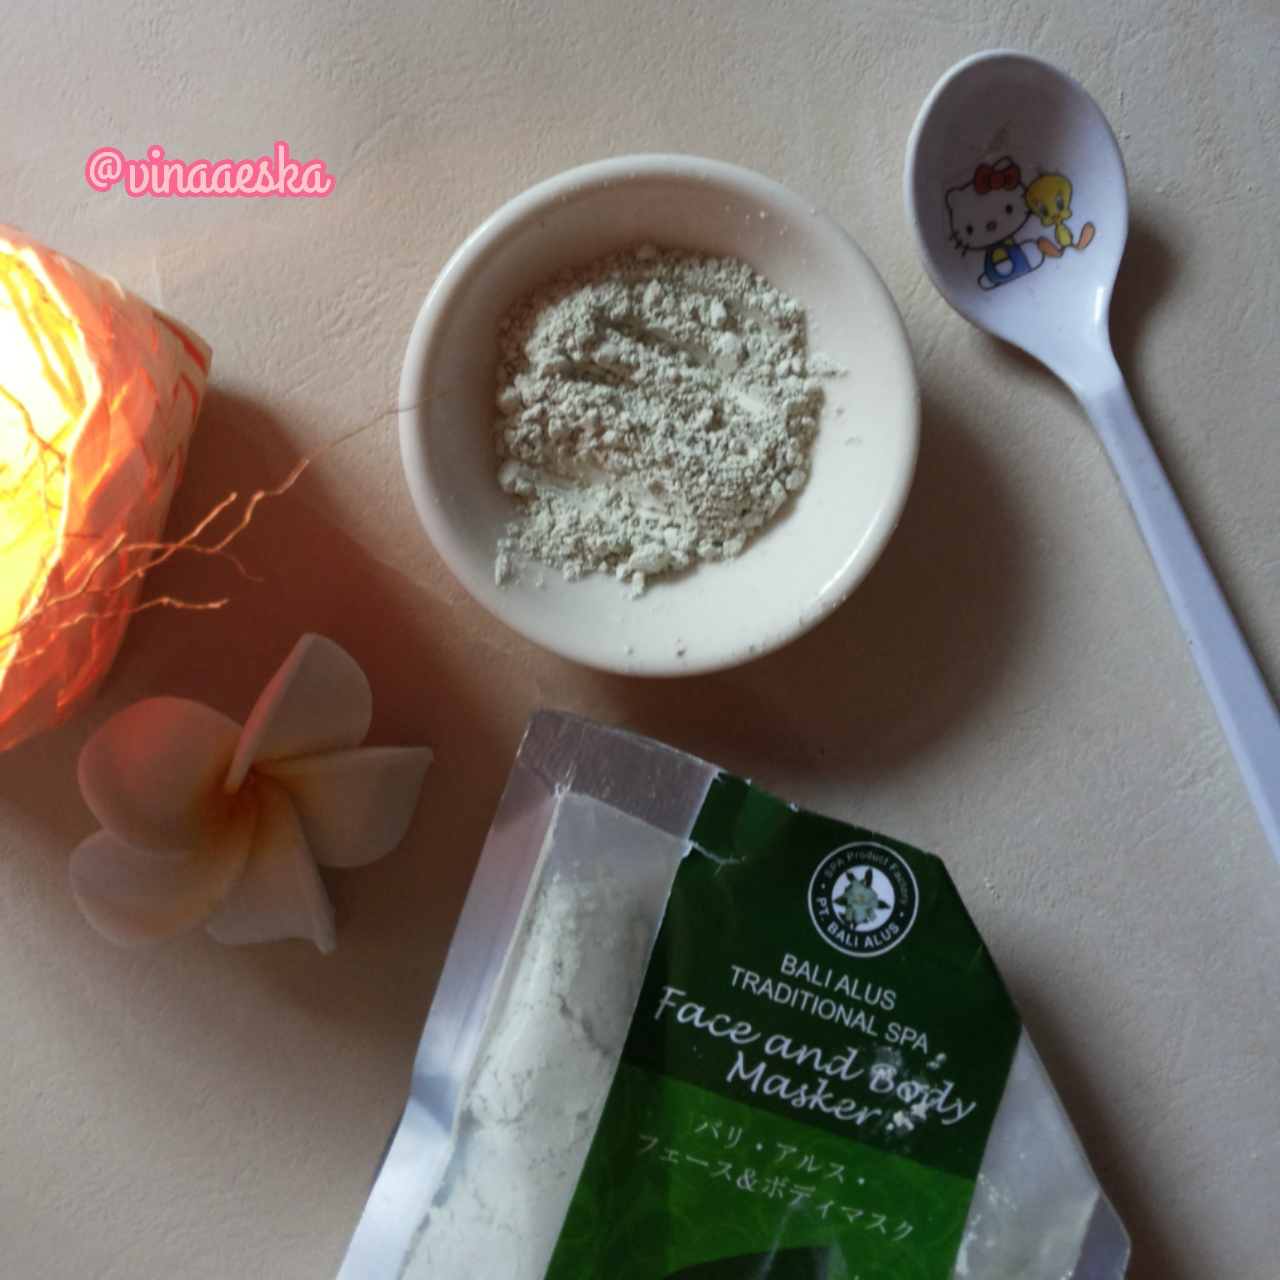 Review Bali Alus Face And Body Masker Green Tea Vina Says Beauty Buy 1 Get Lulur Srub